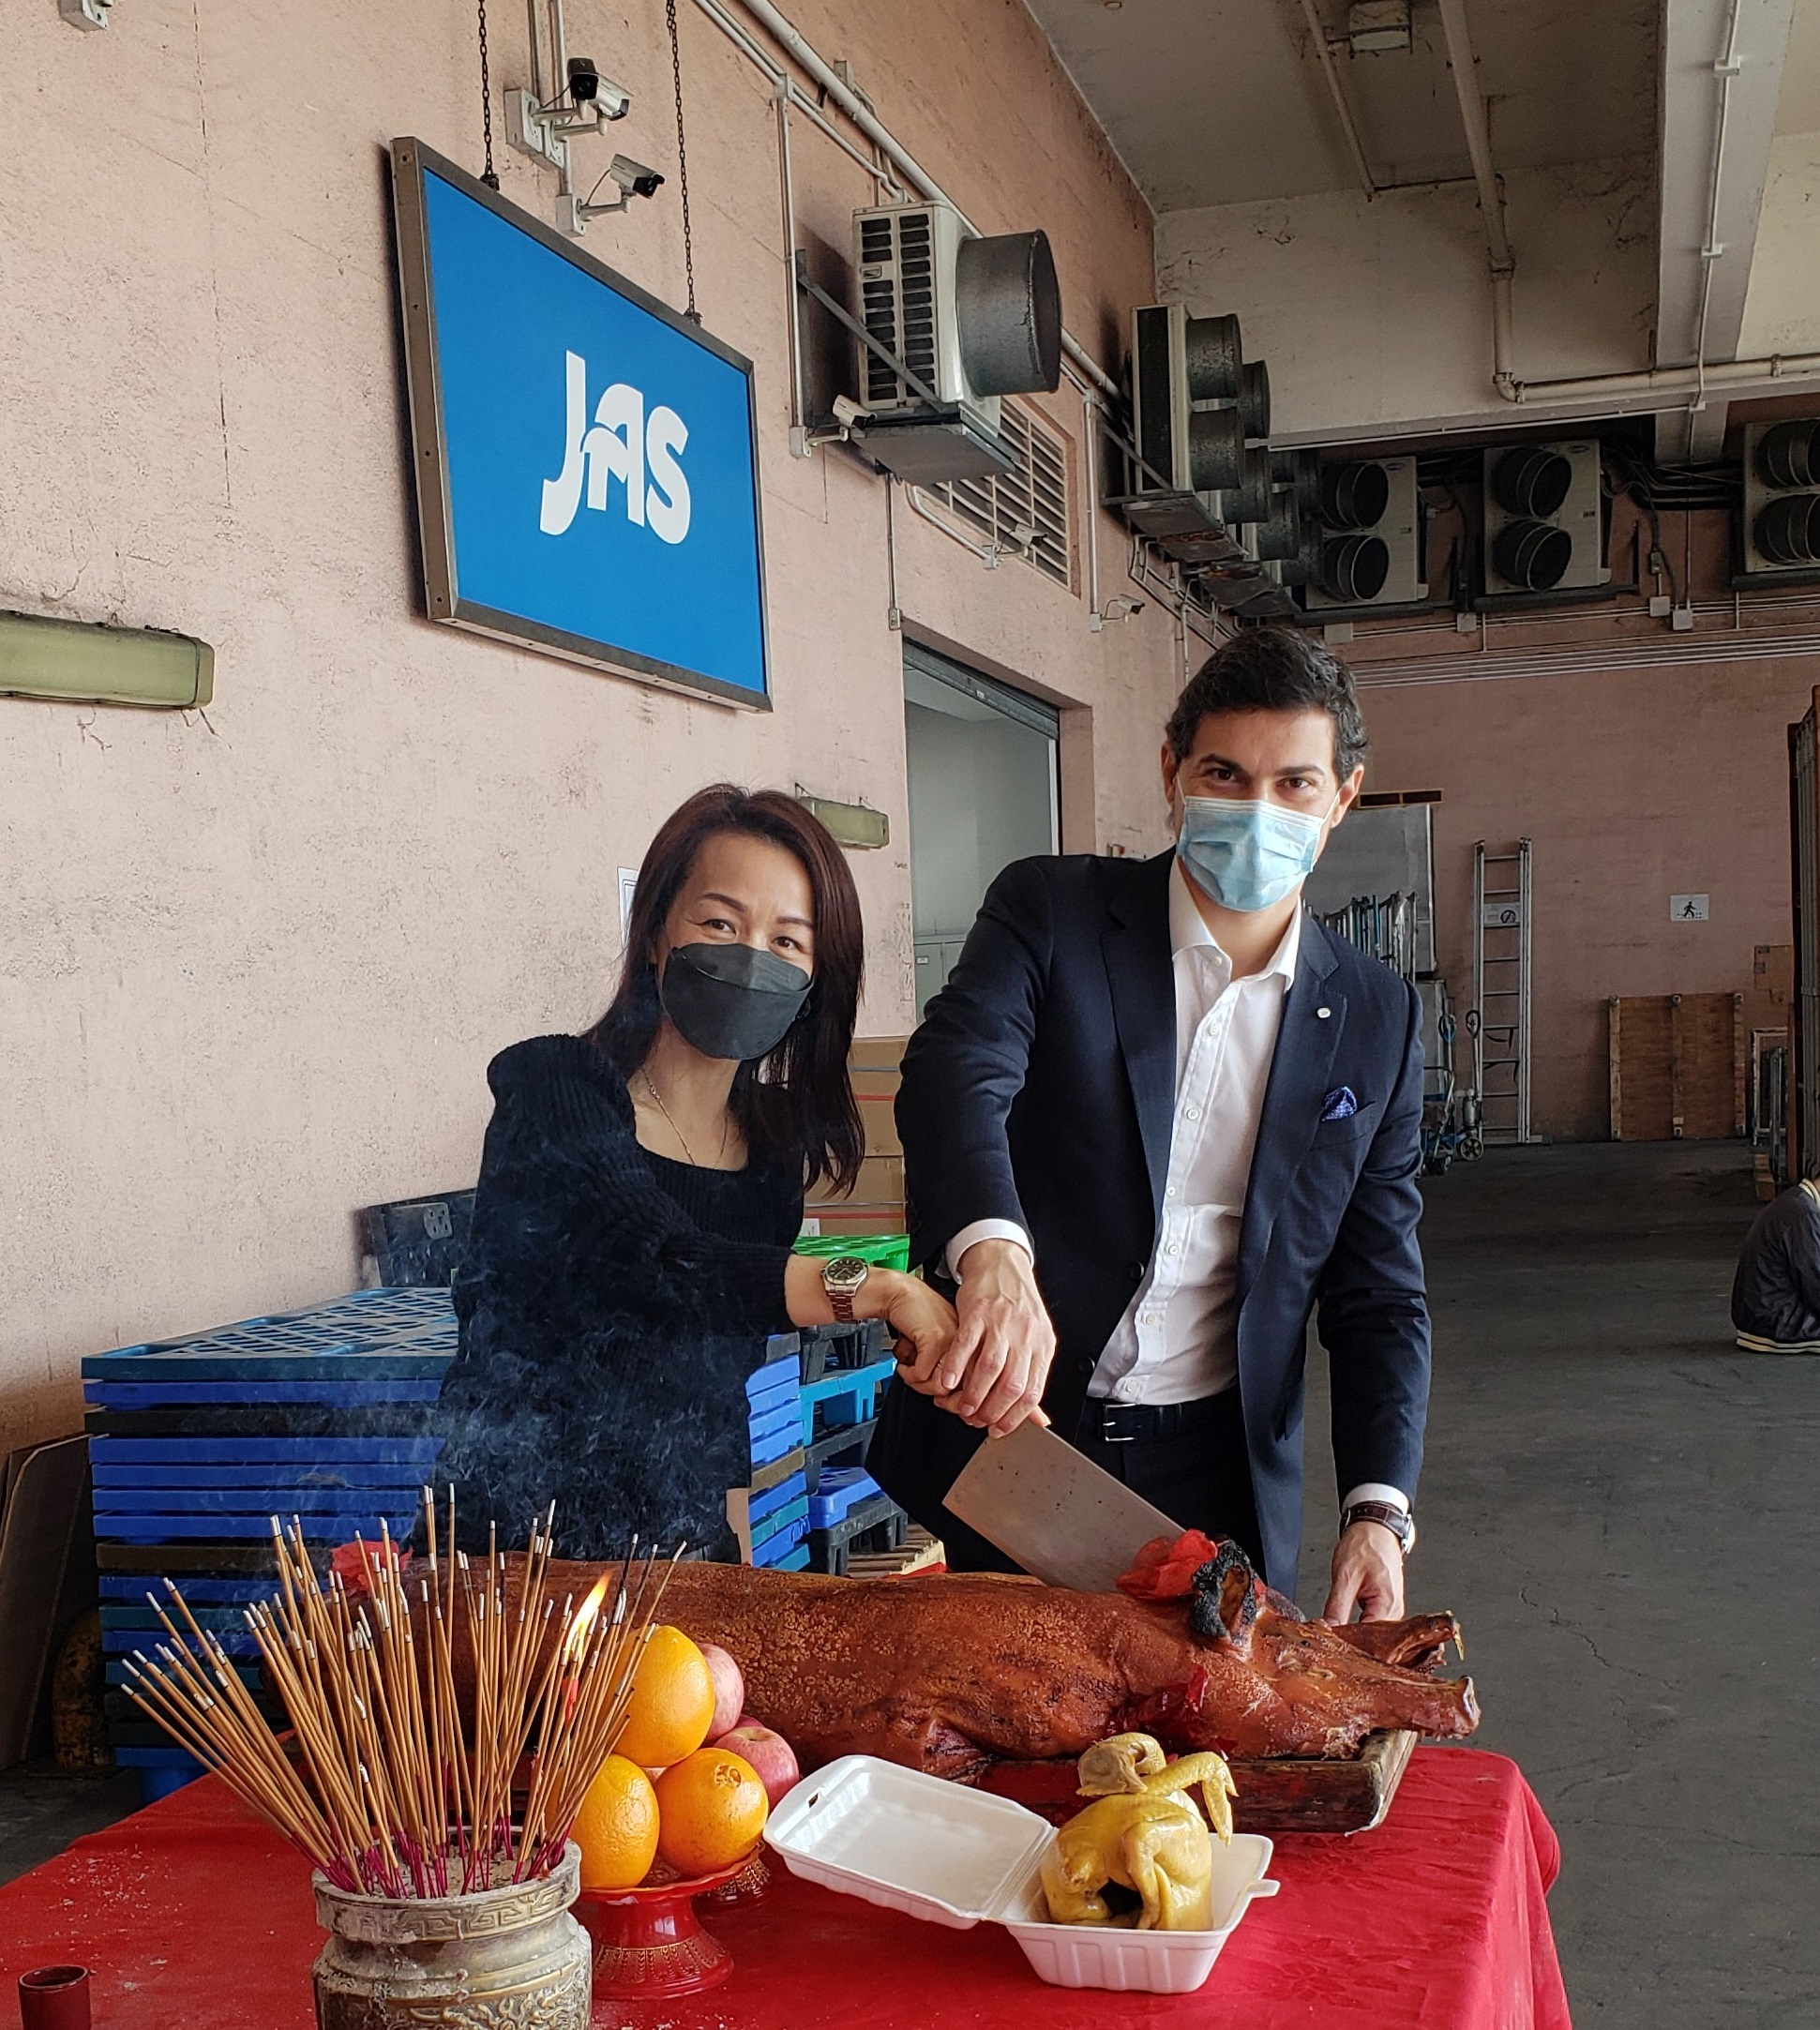 Andrea Azzimonti, Vice President Sales & Marketing, and Wing Chan, JAS Hong Kong Branch Manager & Director of Supply Chain of China including Hong Kong, represented JAS China and Hong Kong in the pig-cutting ceremony.